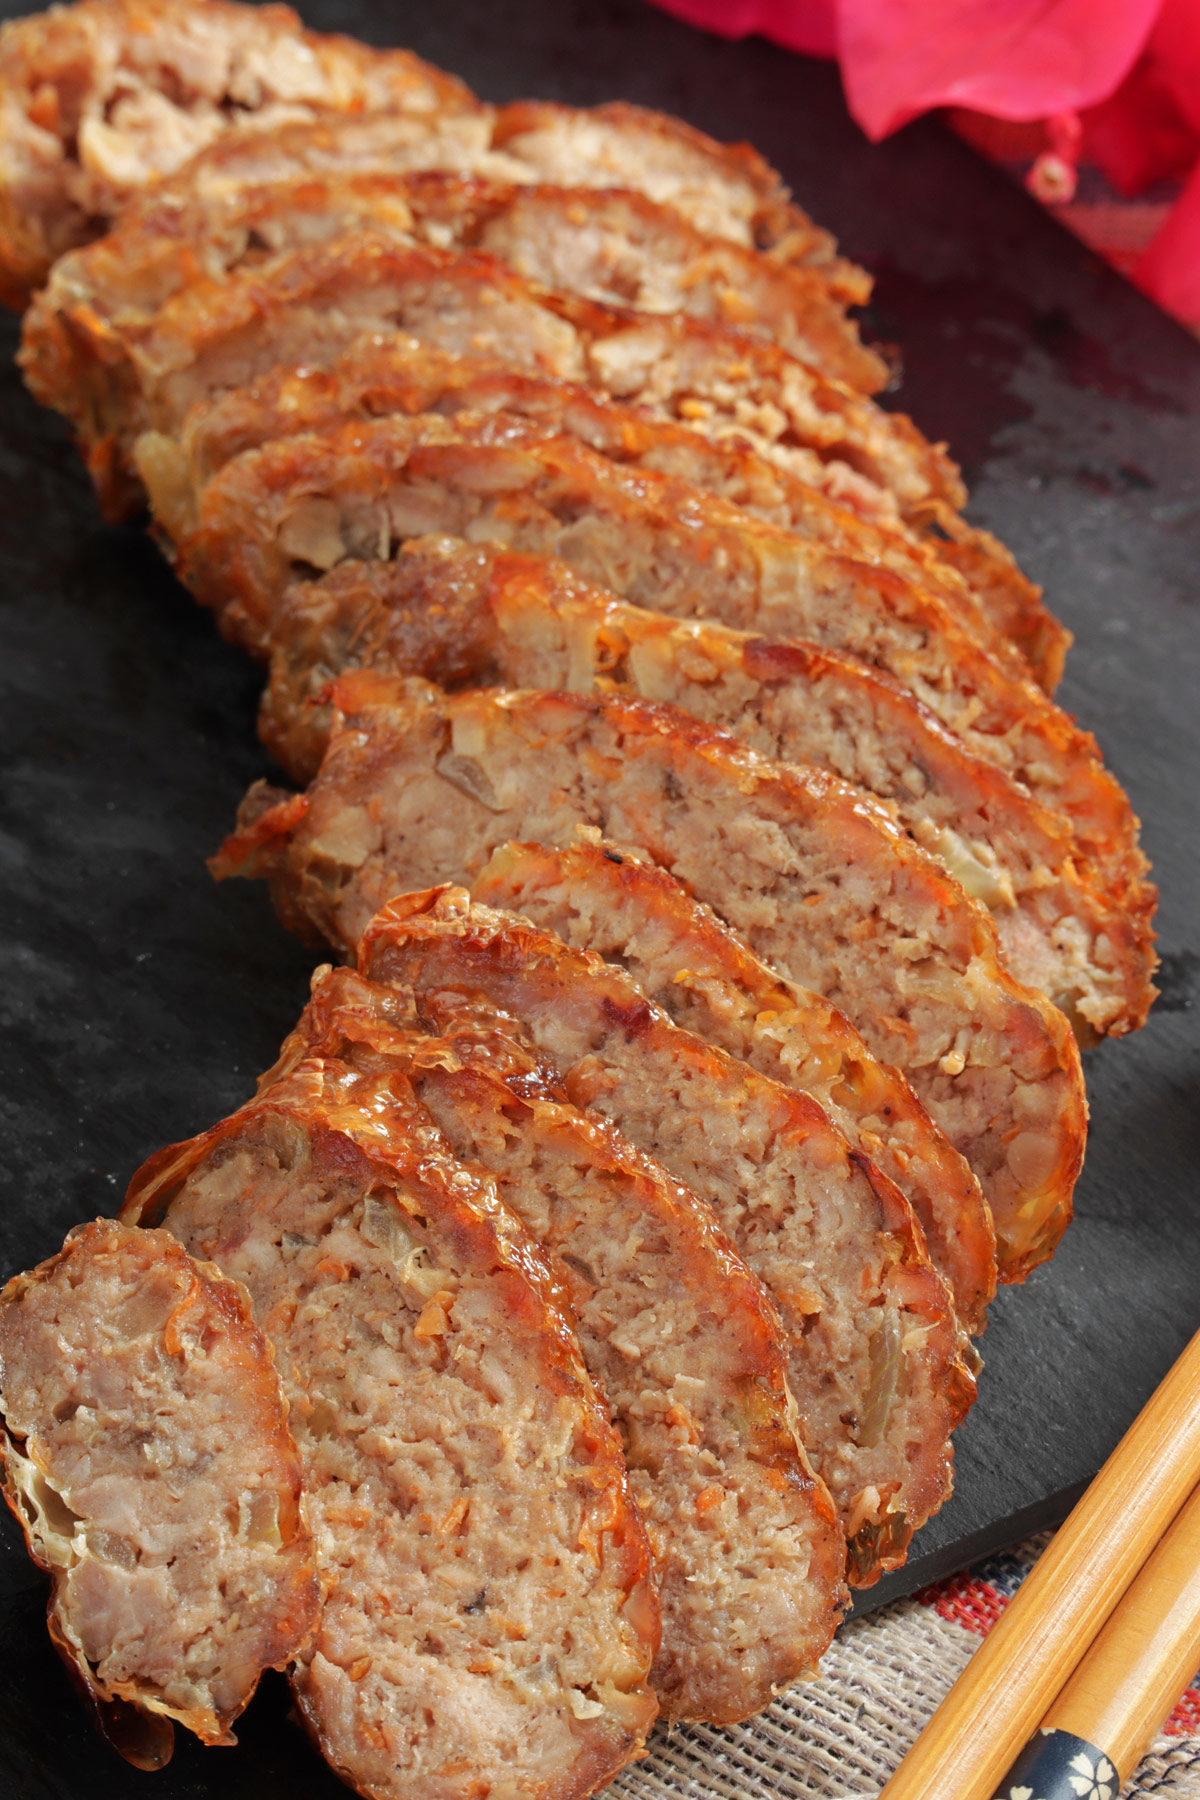 Minced meat seasoned with five-spice powder and rolled in bean curd sheet